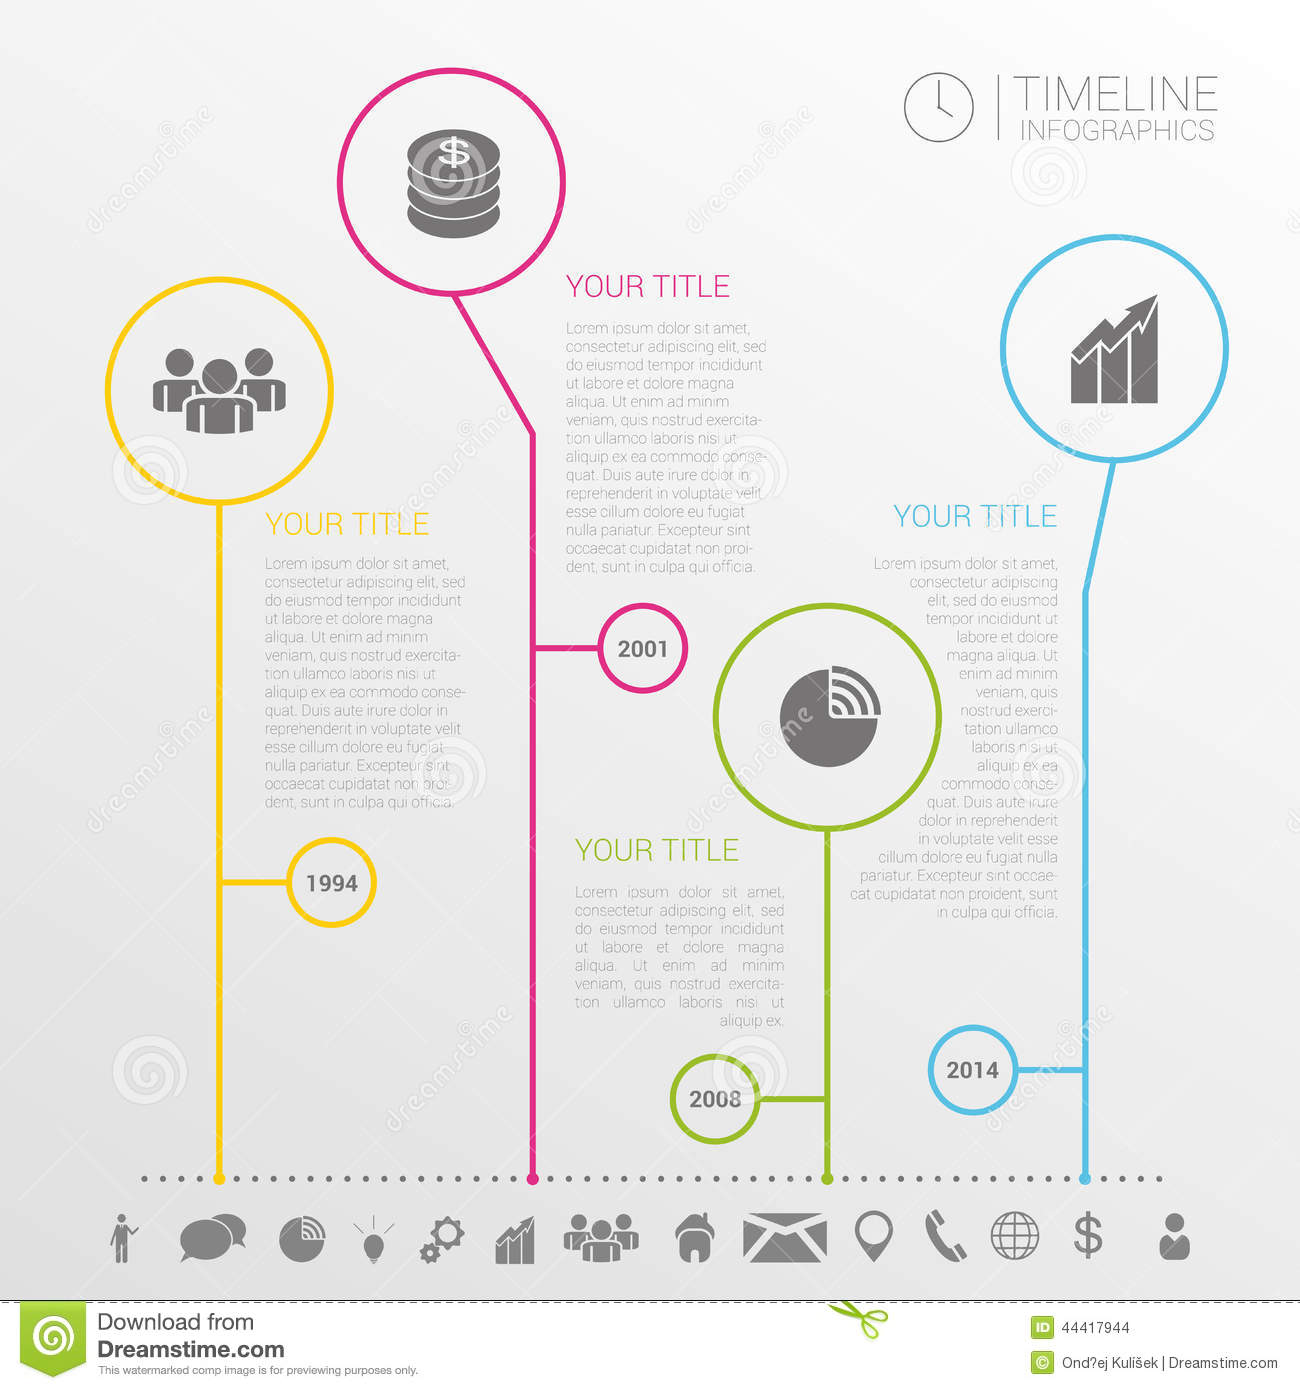 Simple Timeline Infographics Design Stock Vector - Image: 41835986